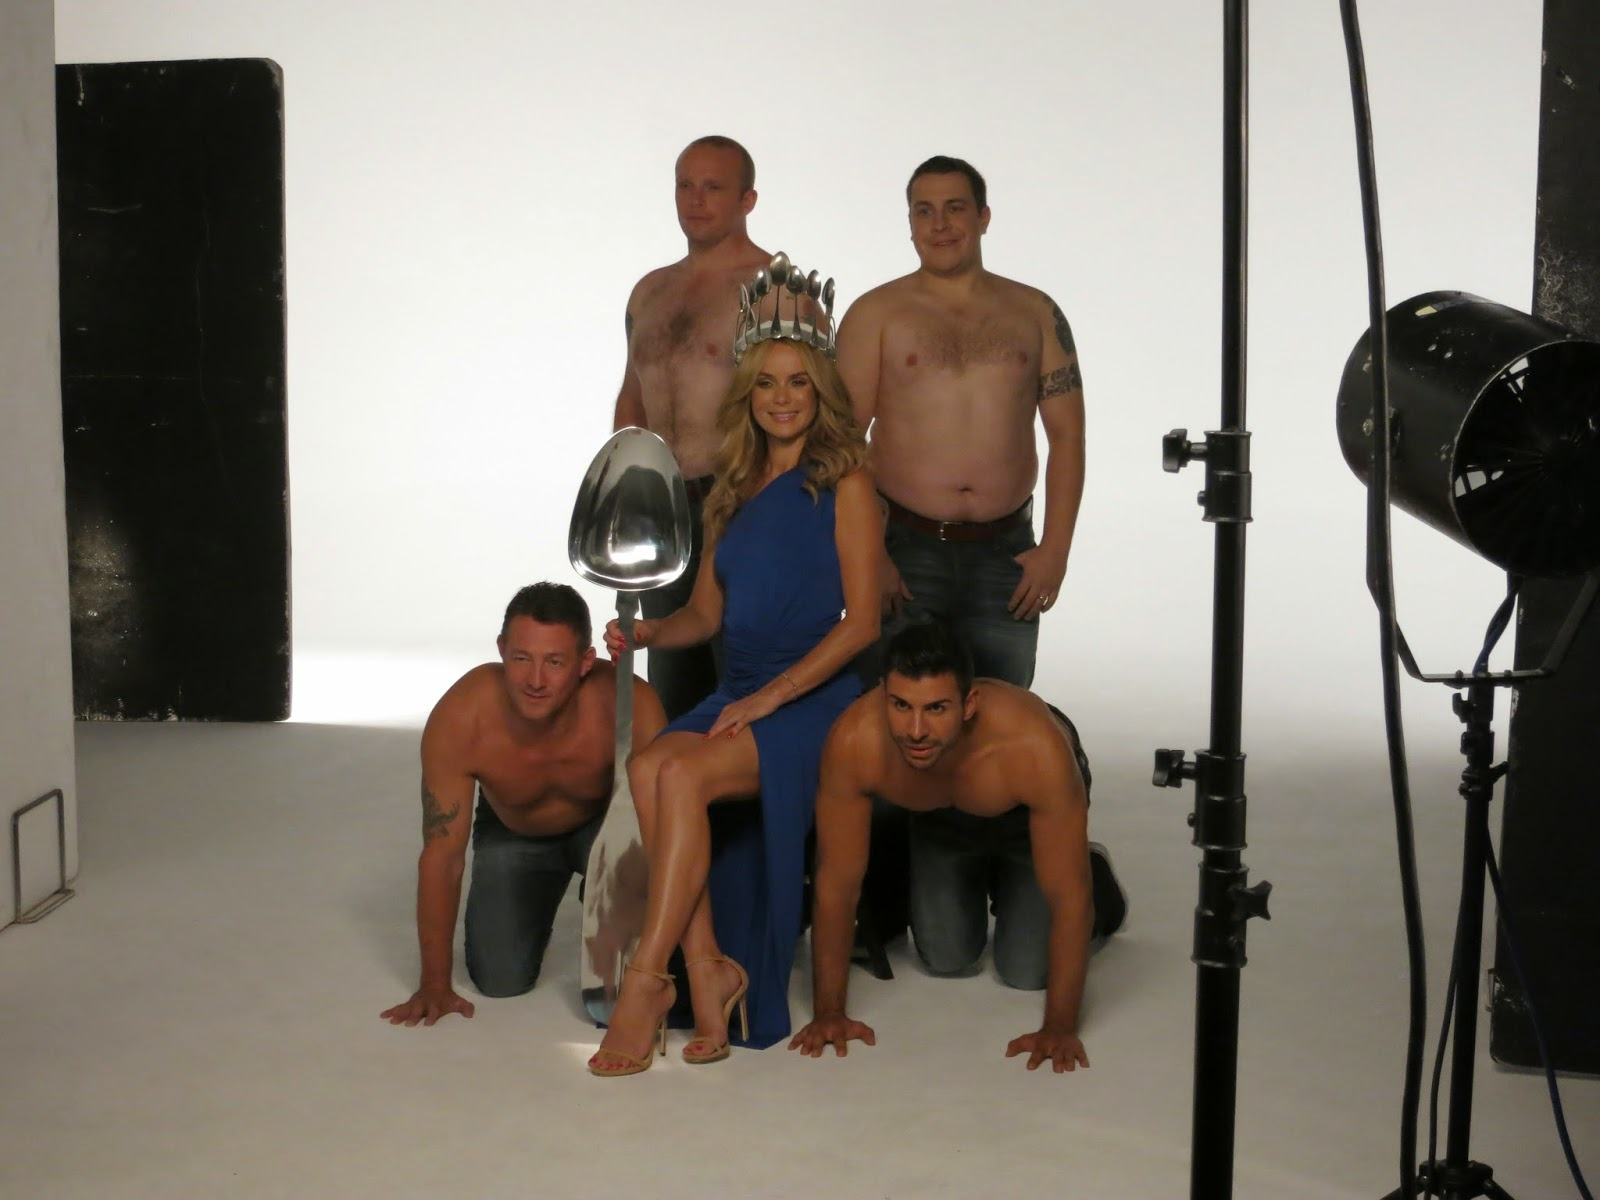 Oykos Hunks - Behind The Scenes - Raining Cake